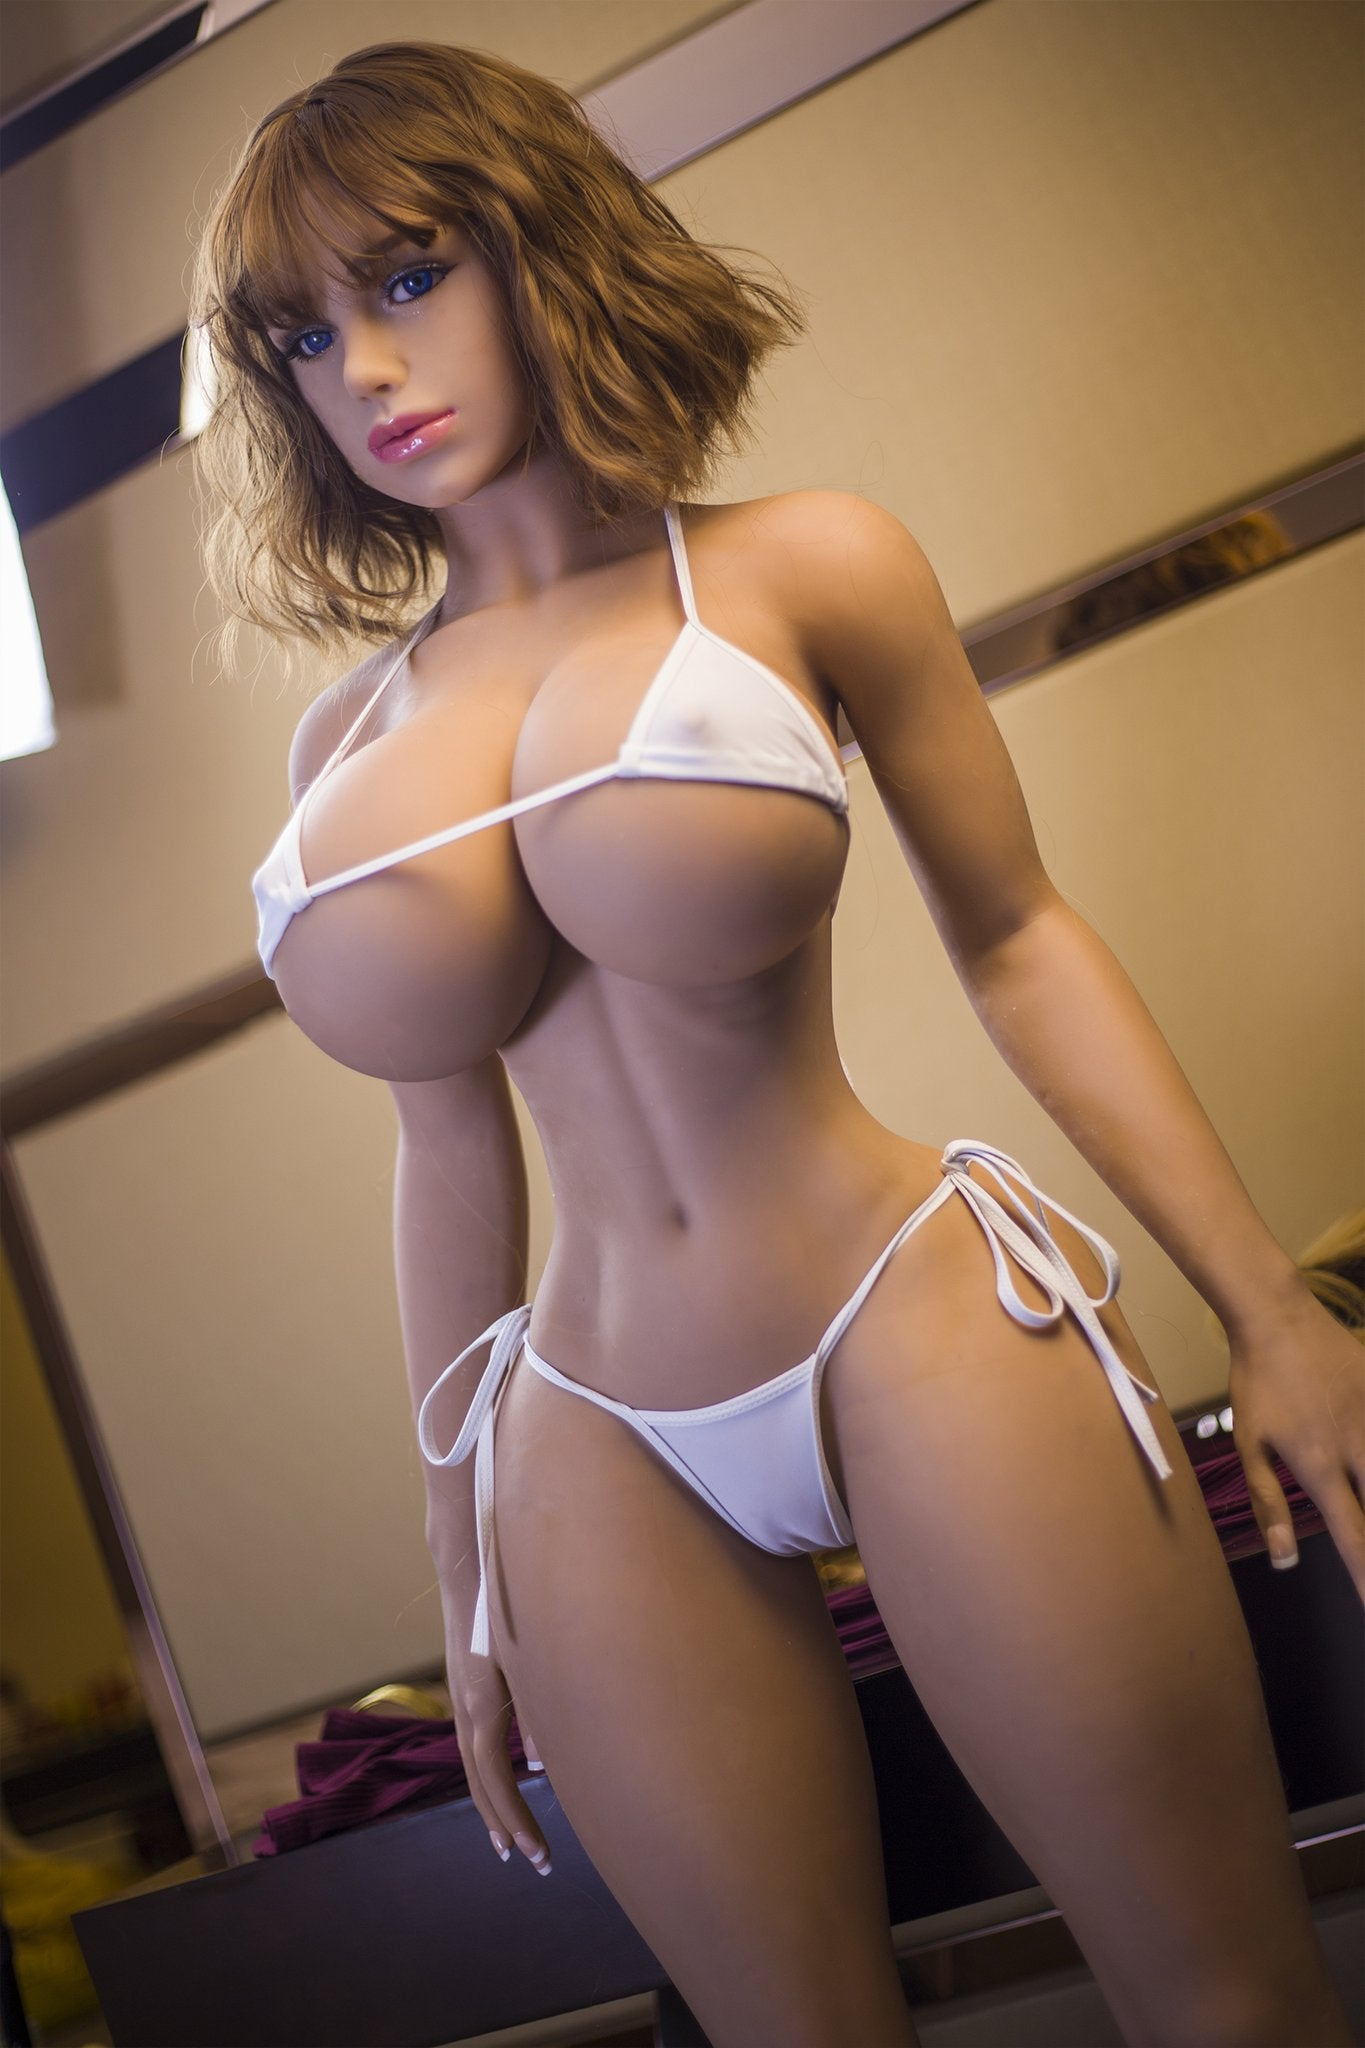 blanche 153cm brown hair curvy giant massive tits jy tpe sex doll(9)